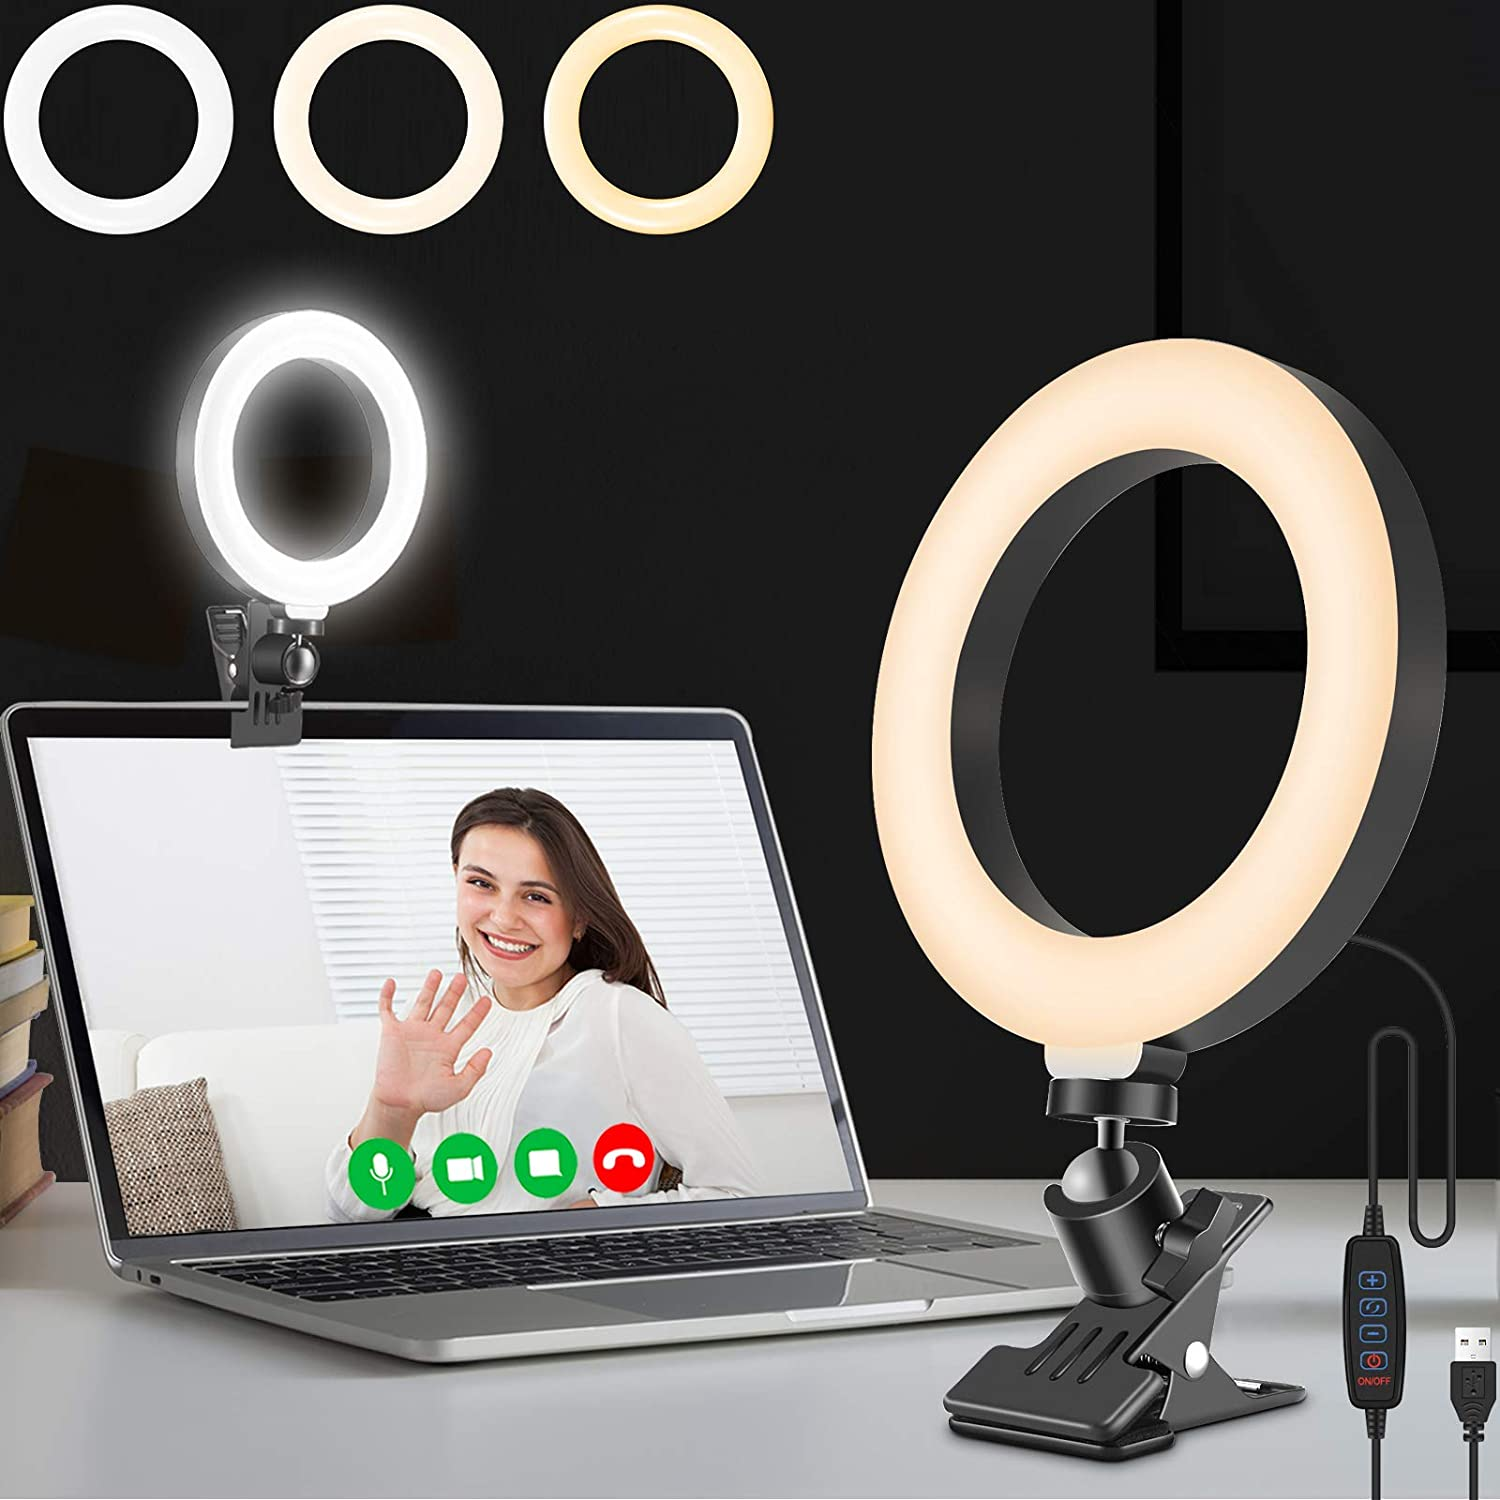 Ring Light Clip On for Laptop Monitor Computer, Video Conferencing Light with Clamp Mount for Zoom Call/Zoom Lighting/Remote Working/Self Broadcasting/Live Streaming/Make-up